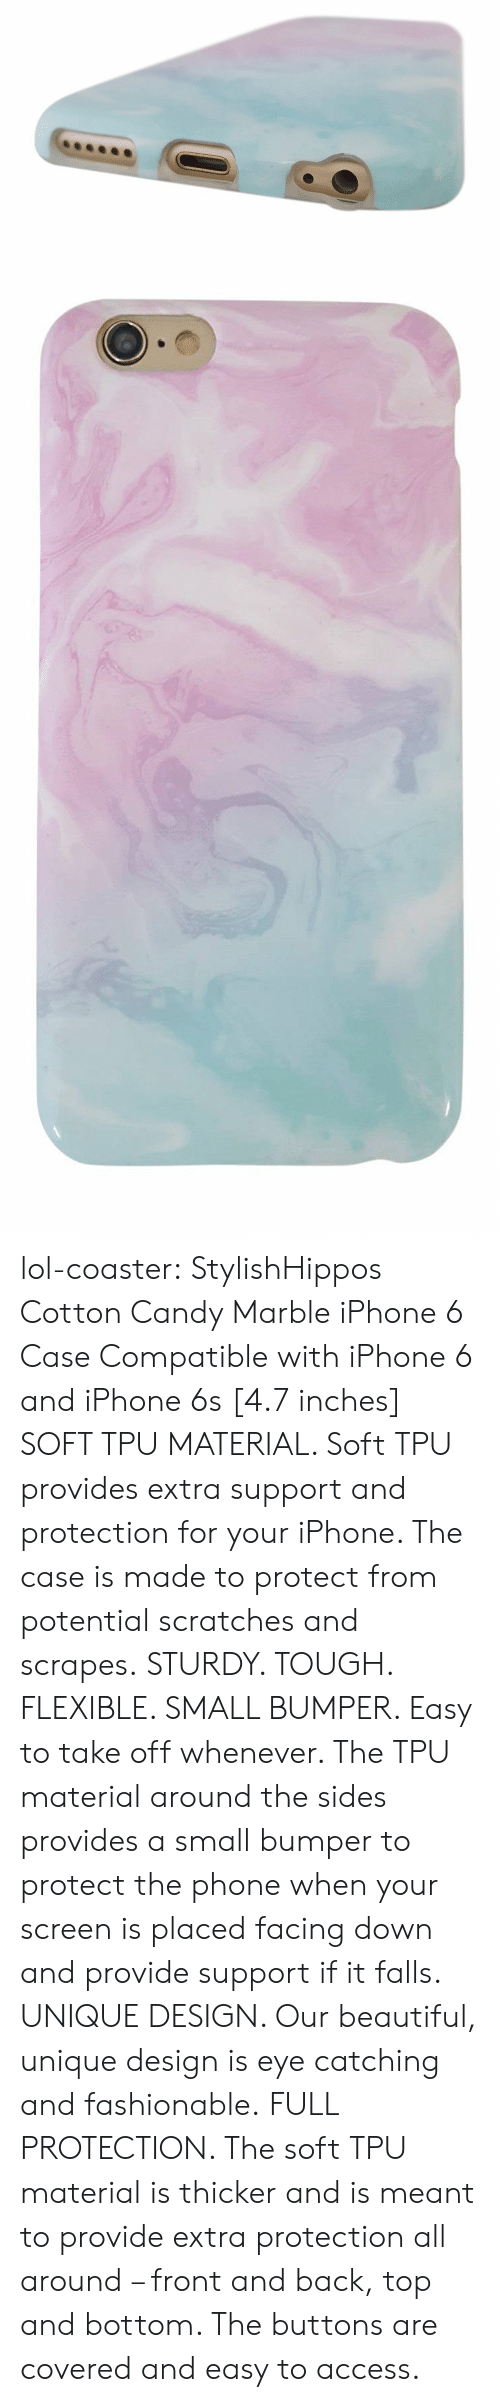 7 Inches: lol-coaster:    StylishHippos Cotton Candy Marble iPhone 6 Case   Compatible with iPhone 6 and iPhone 6s [4.7 inches] SOFT TPU MATERIAL. Soft TPU provides extra support and protection for your iPhone. The case is made to protect from potential scratches and scrapes. STURDY. TOUGH. FLEXIBLE. SMALL BUMPER. Easy to take off whenever. The TPU material around the sides provides a small bumper to protect the phone when your screen is placed facing down and provide support if it falls. UNIQUE DESIGN. Our beautiful, unique design is eye catching and fashionable. FULL PROTECTION. The soft TPU material is thicker and is meant to provide extra protection all around – front and back, top and bottom. The buttons are covered and easy to access.